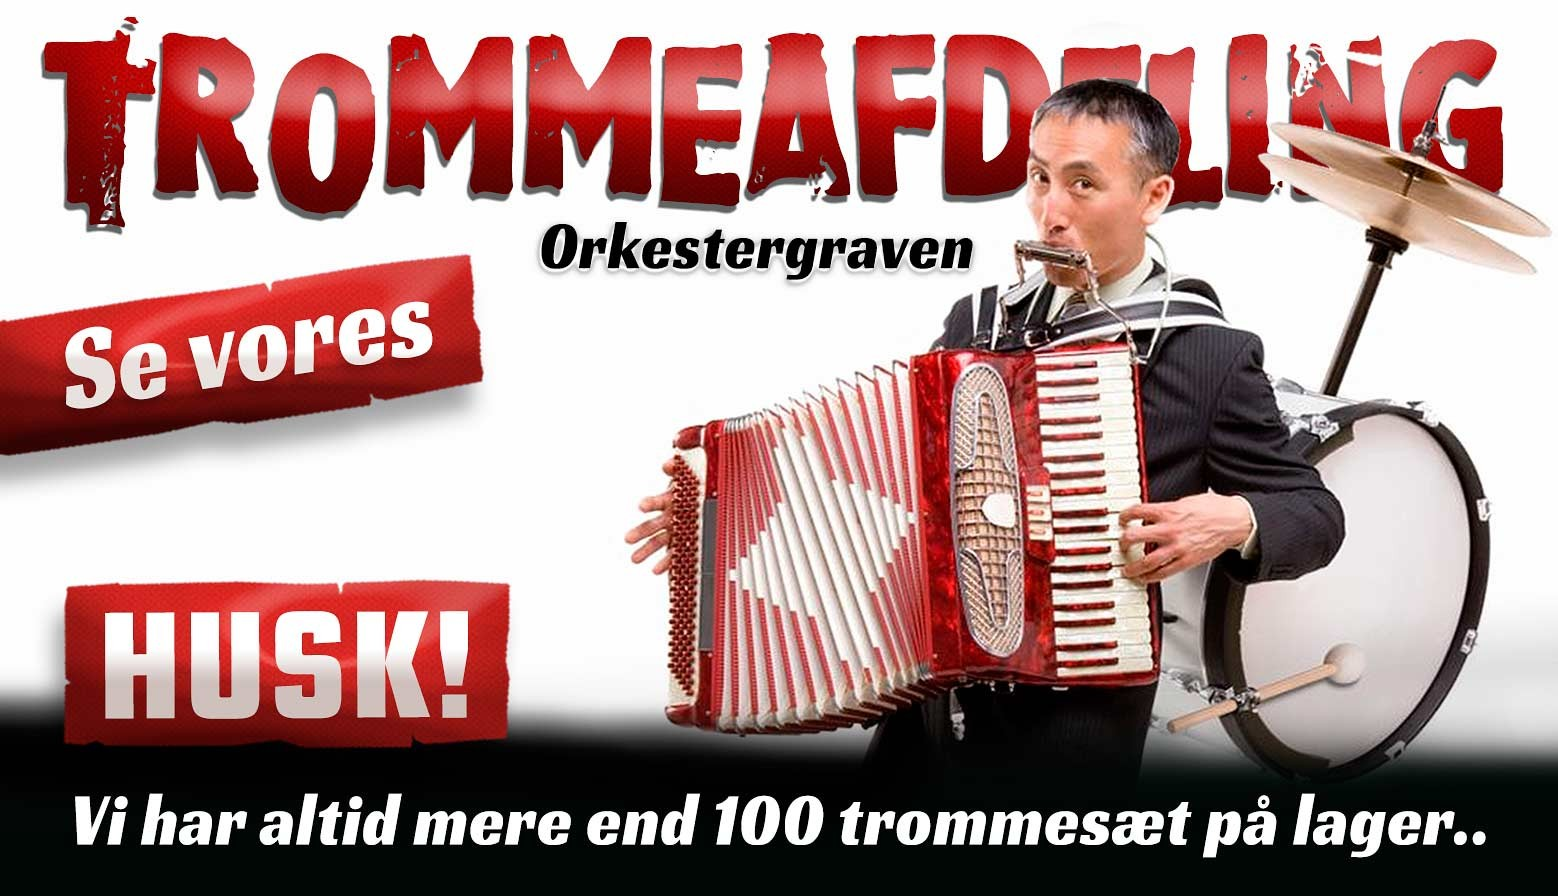 Trommeafd banner